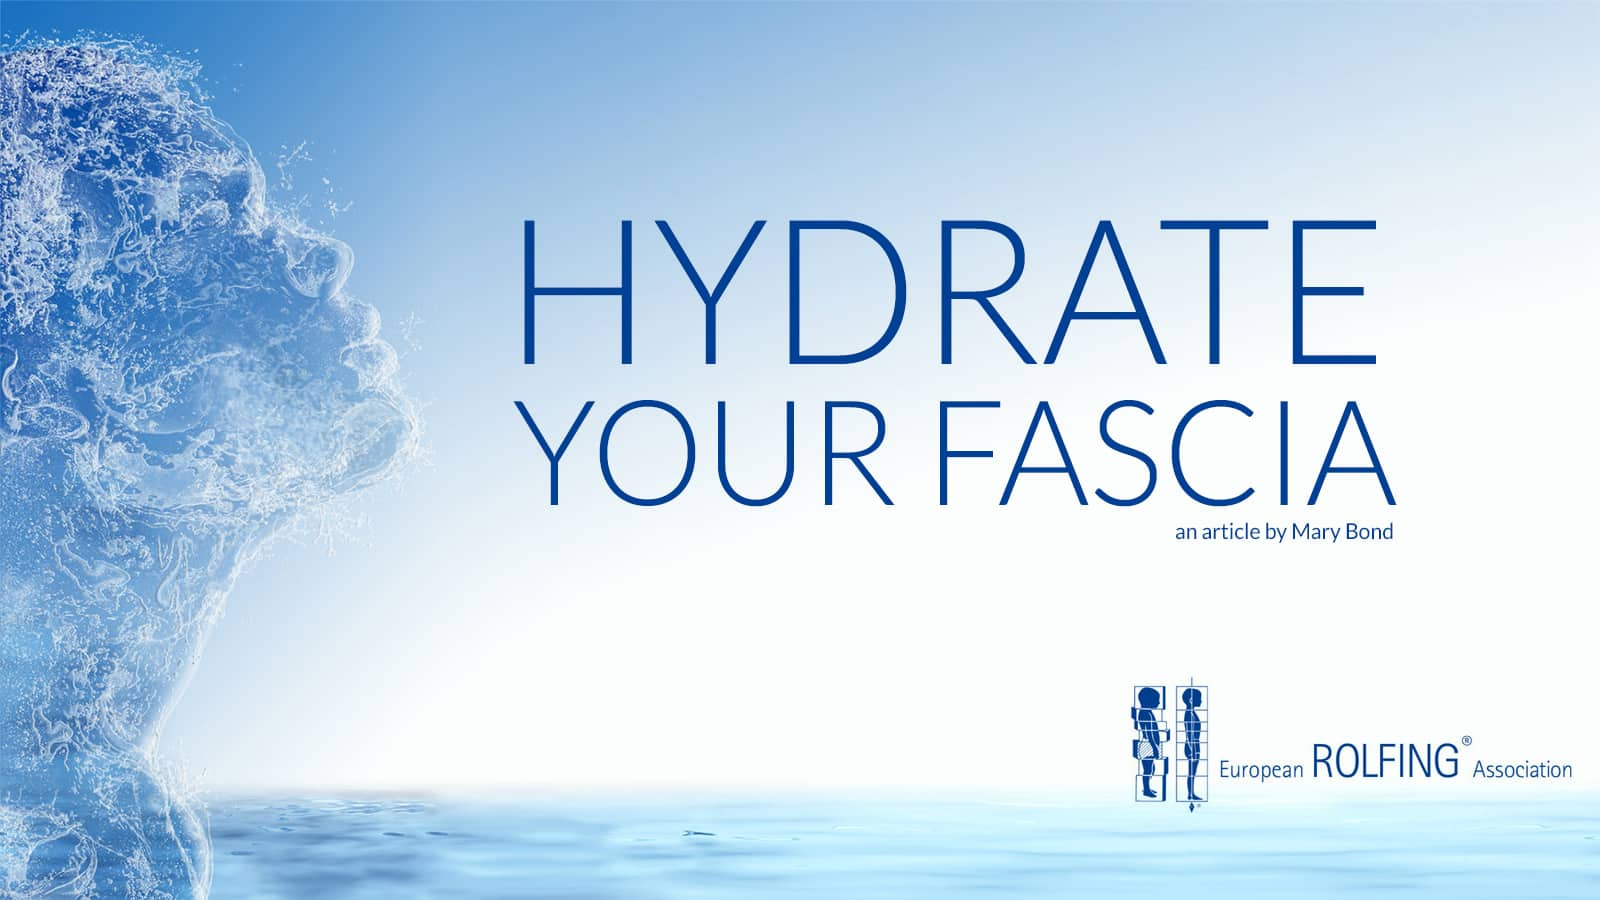 HYDRATE YOUR FASCIA